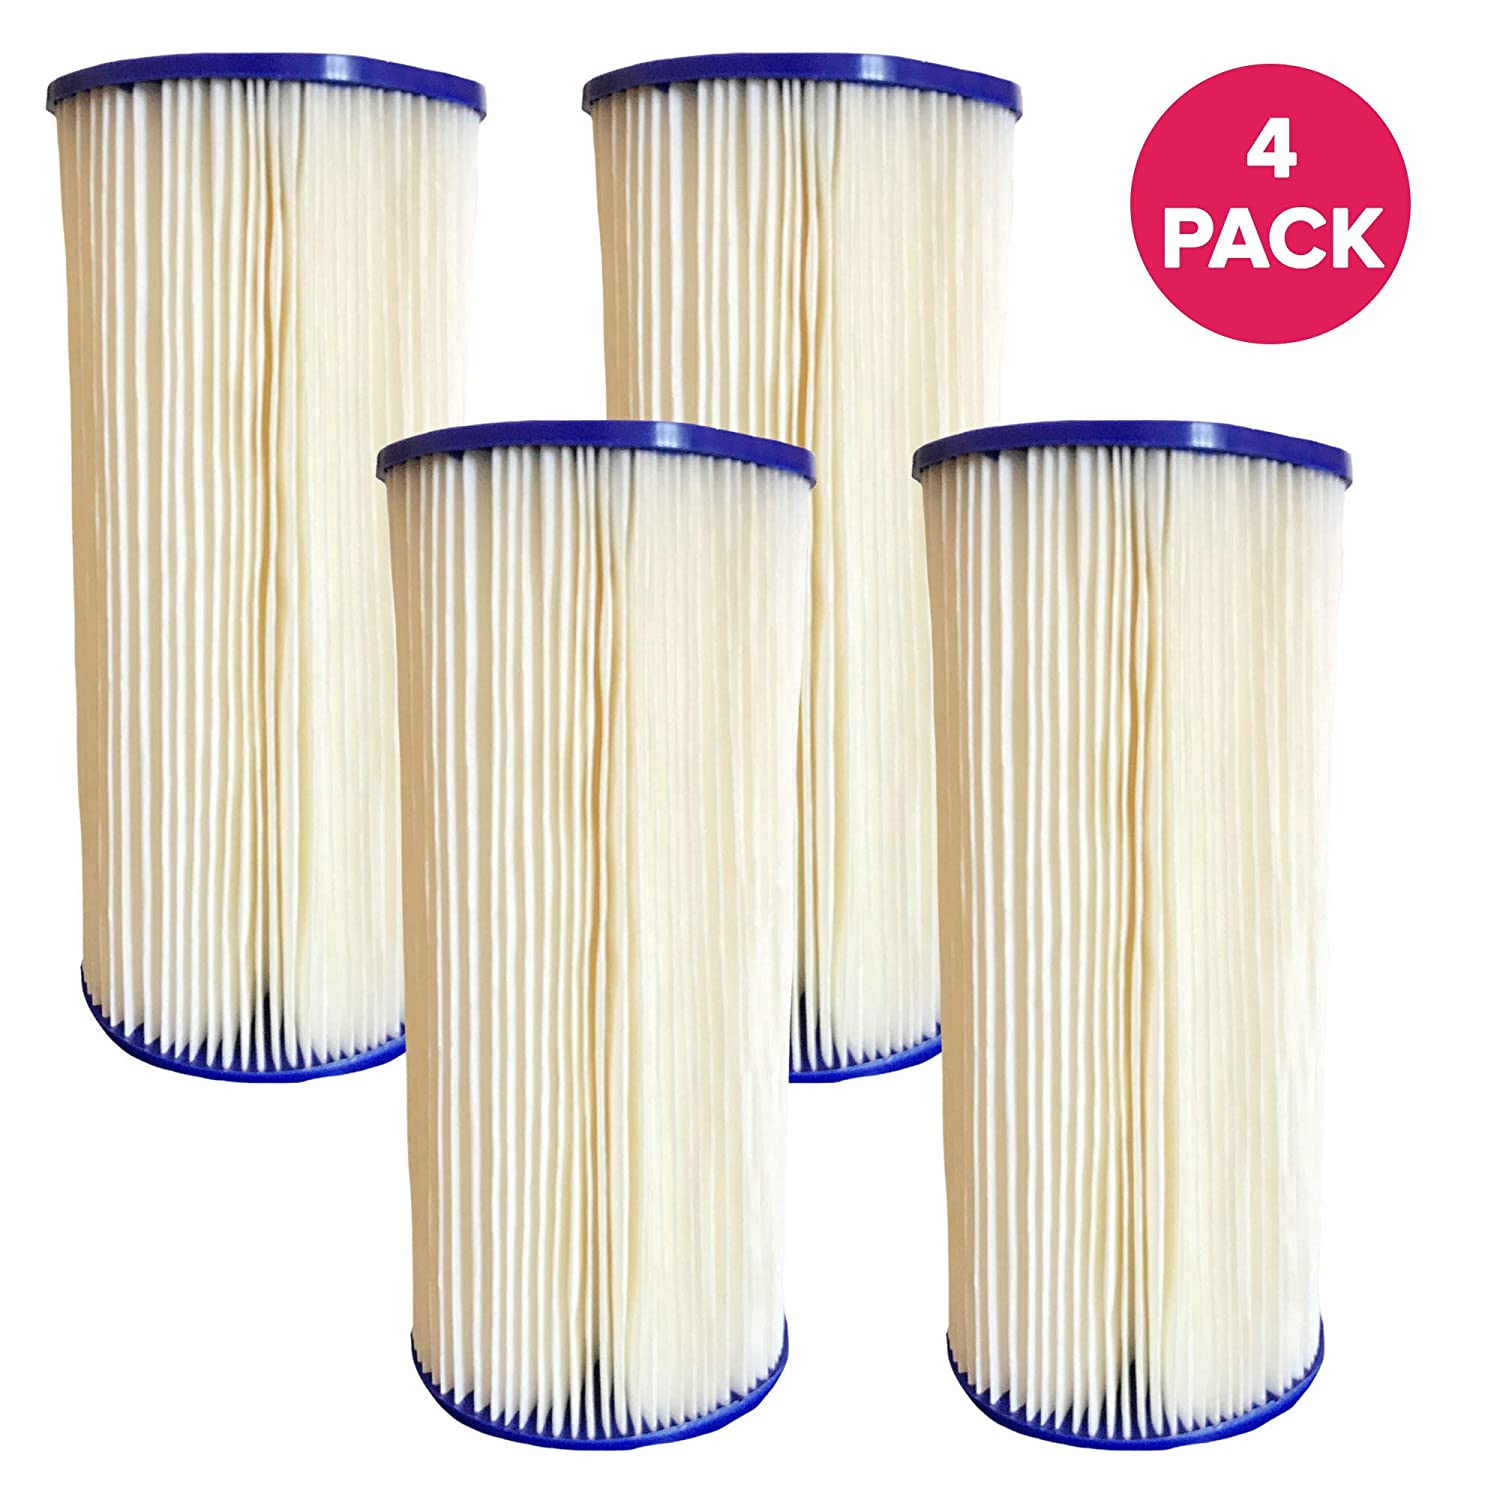 Think Crucial Replacement Water Filter – Compatible with GE FXHSC Whole House Pre-Filtration Sediment Filter, Culligan R50-BBSA, Pentek R50-BB, Dupont WFHDC3001 – Fits Most GE Models – Bulk (4 Pack)